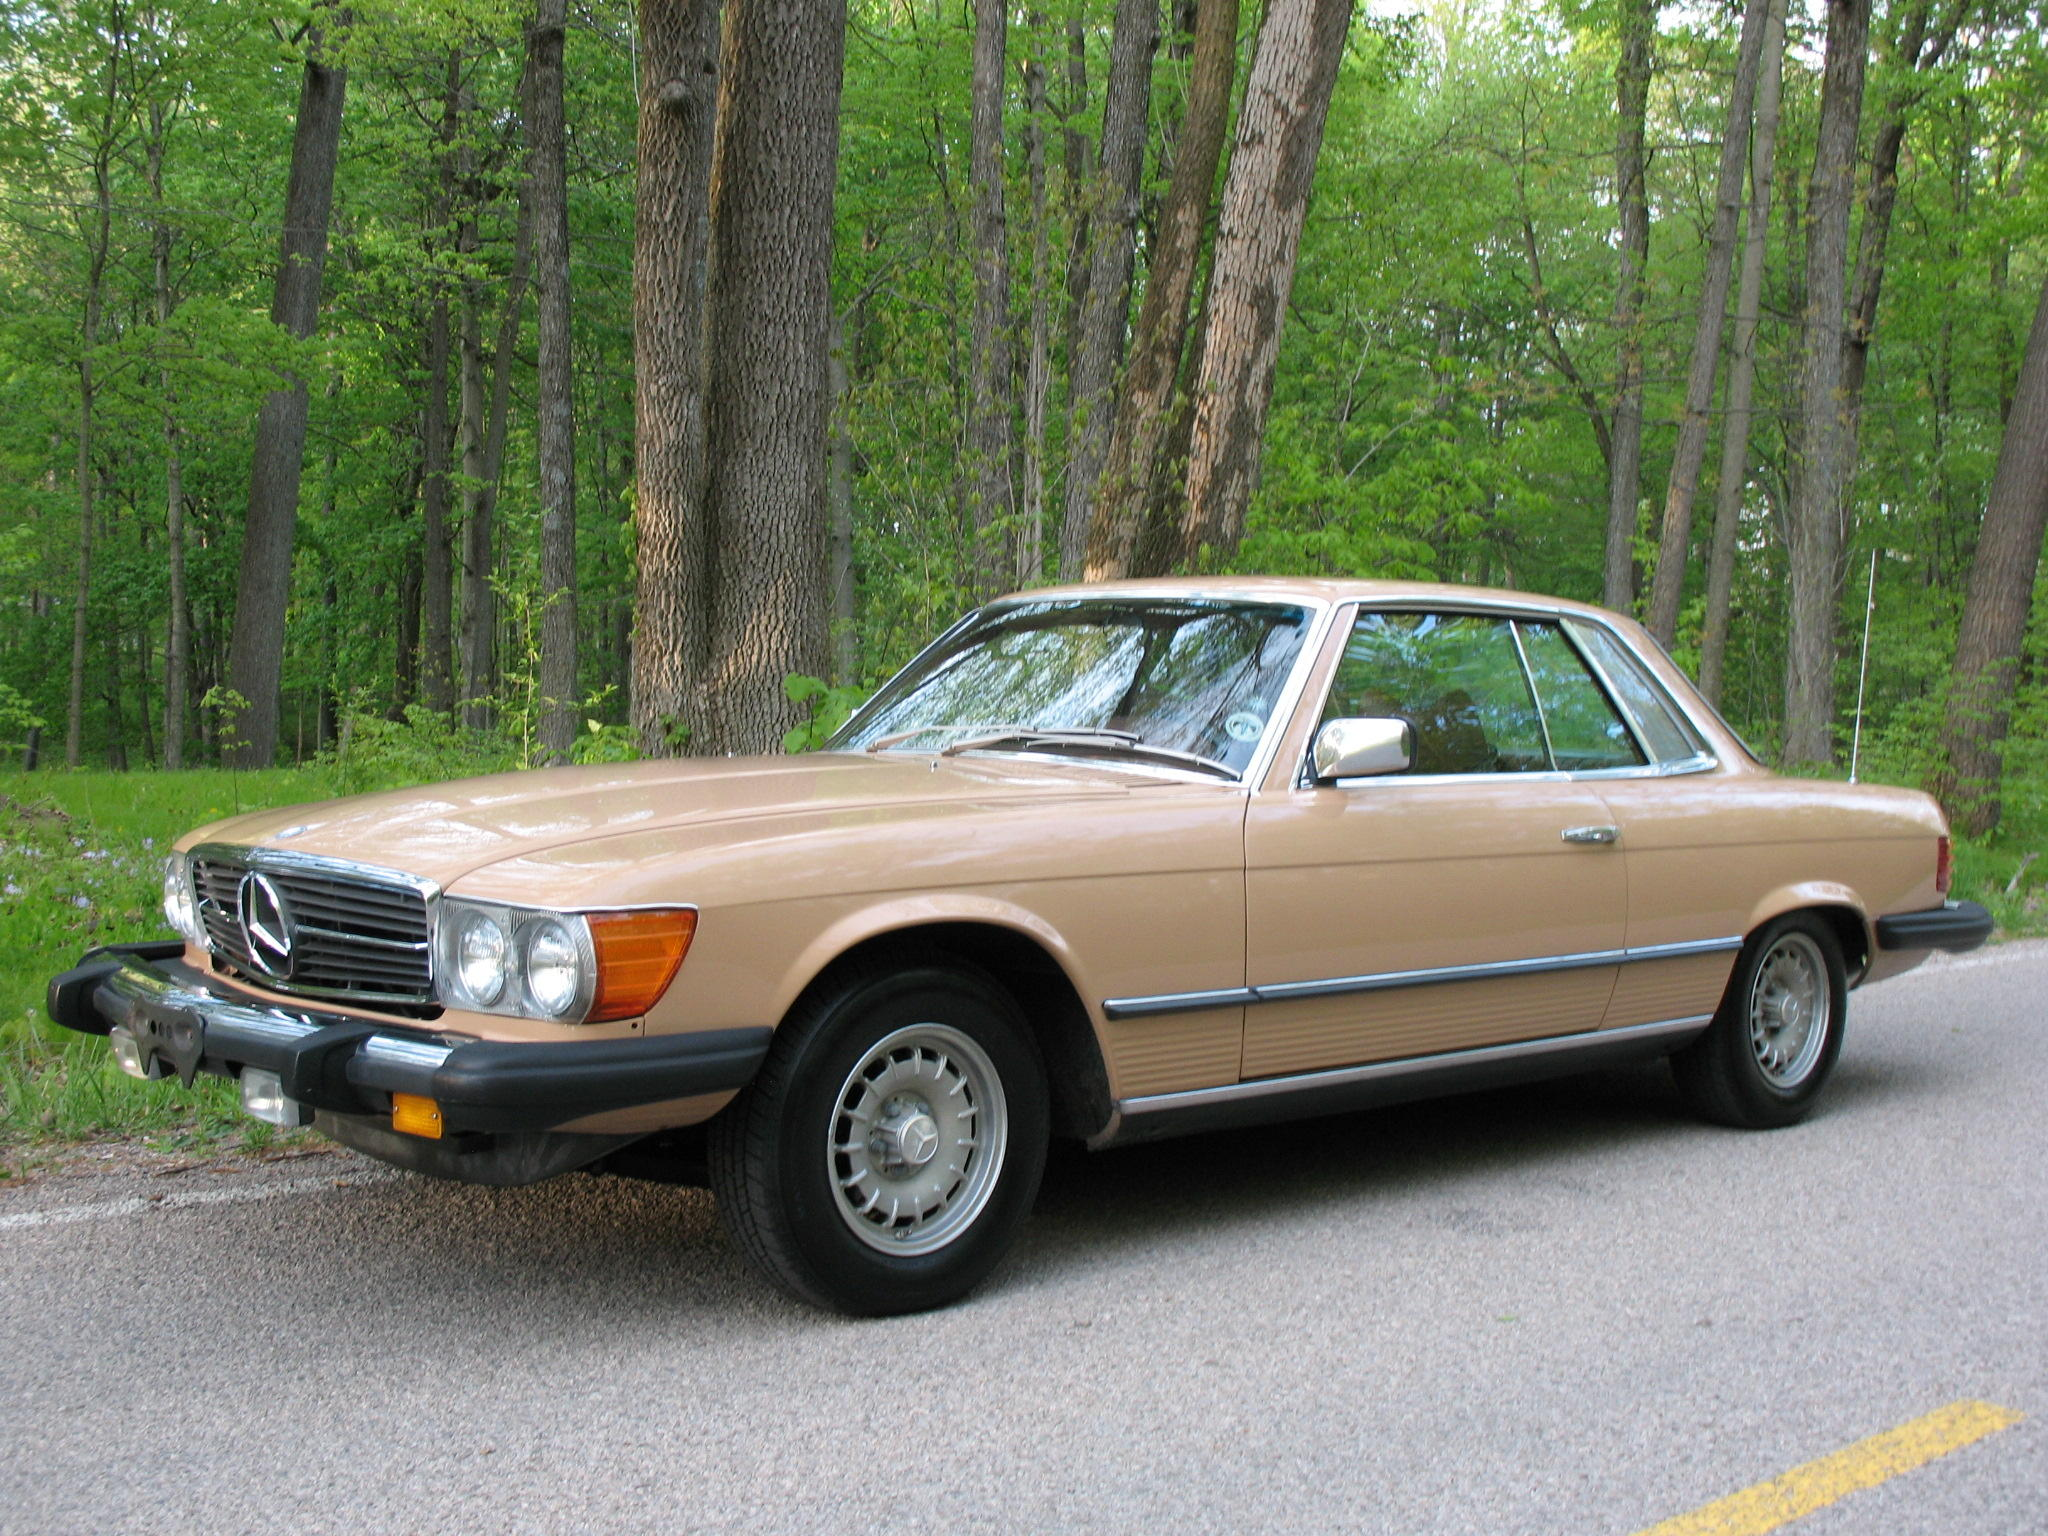 2 owners, just over 40,000 miles from new 1977 Mercedes-Benz 450 SLC...